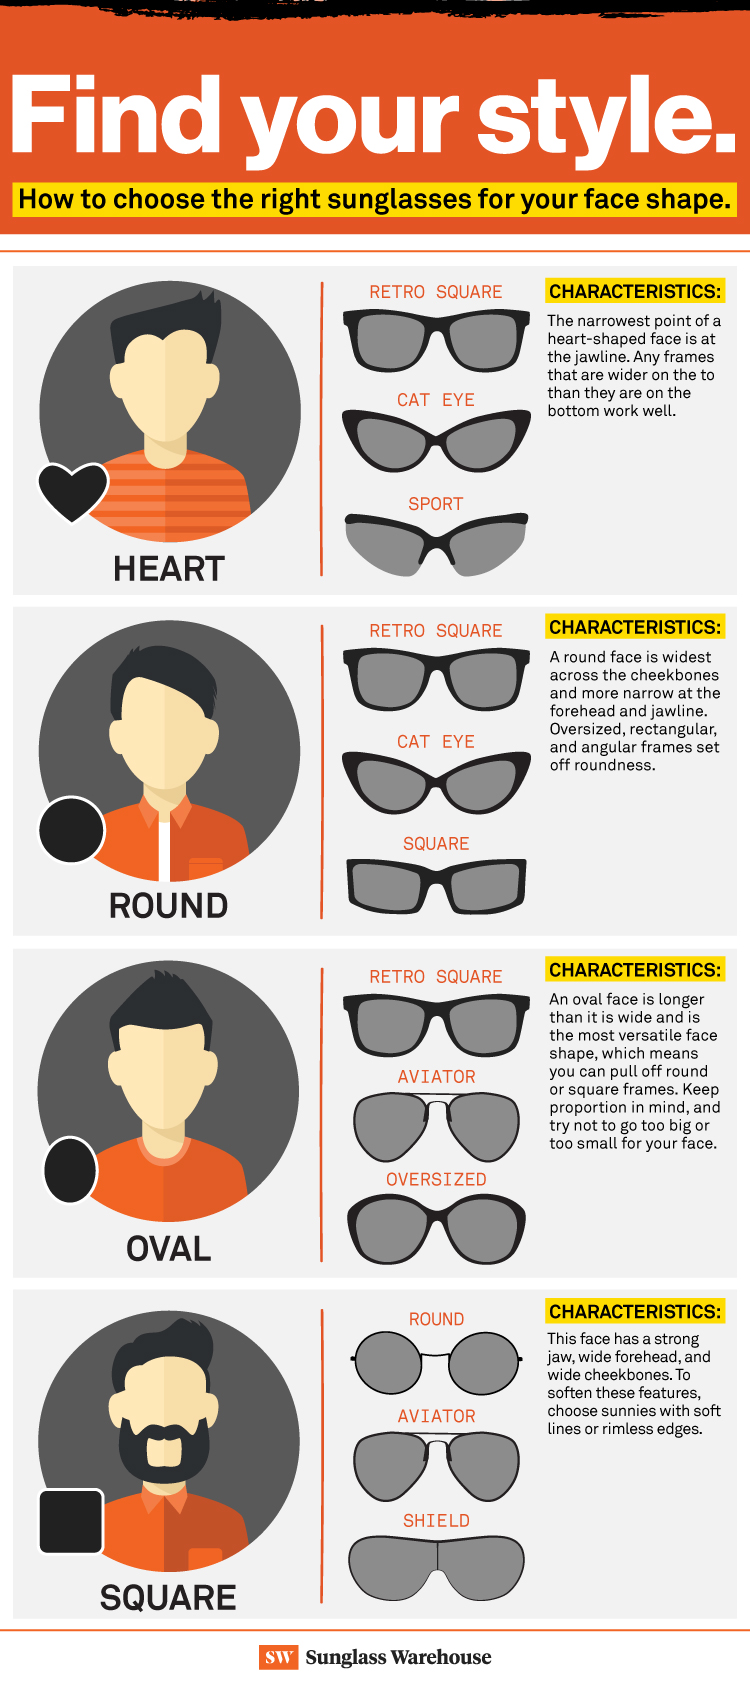 a5376922fc47 ... best fits your face. Infographic provided by Sunglass Warehouse